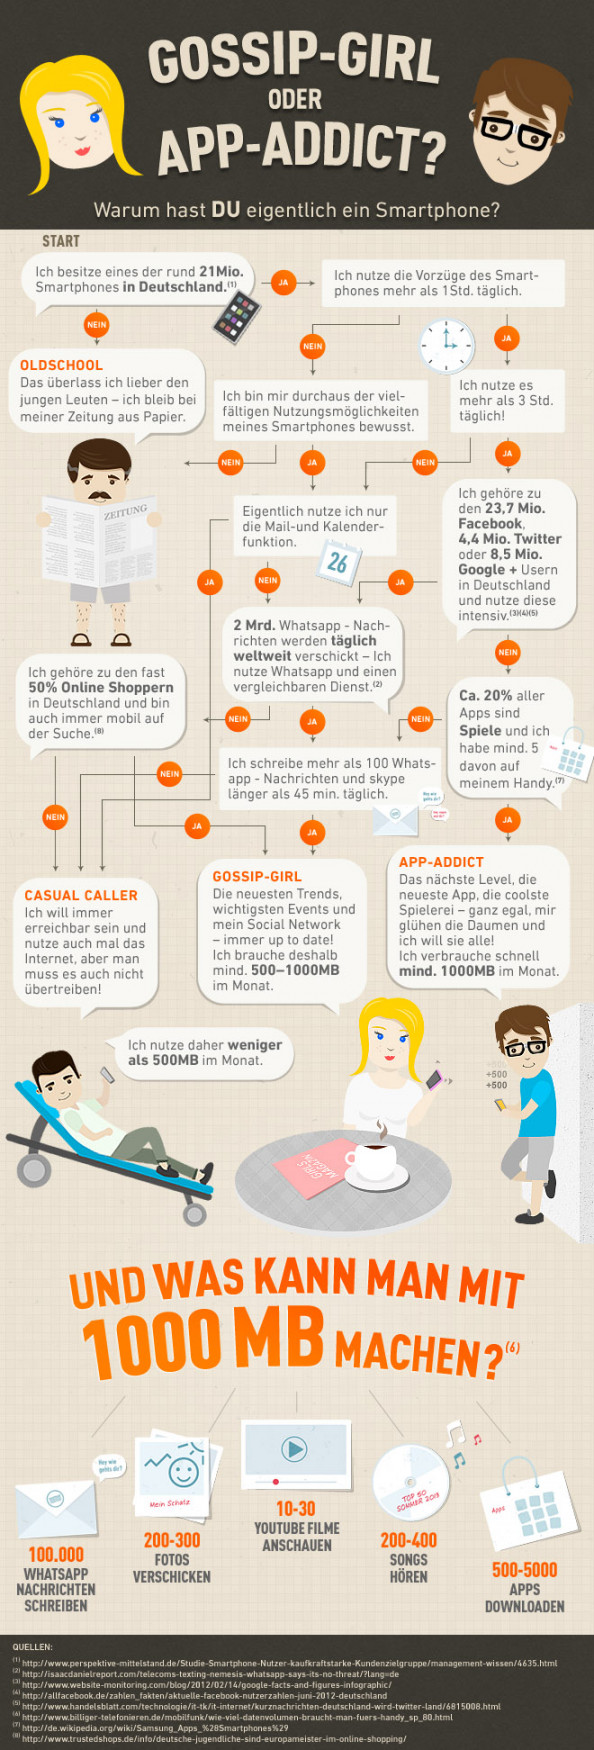 Gossip-Girl or App-Addict? Infographic